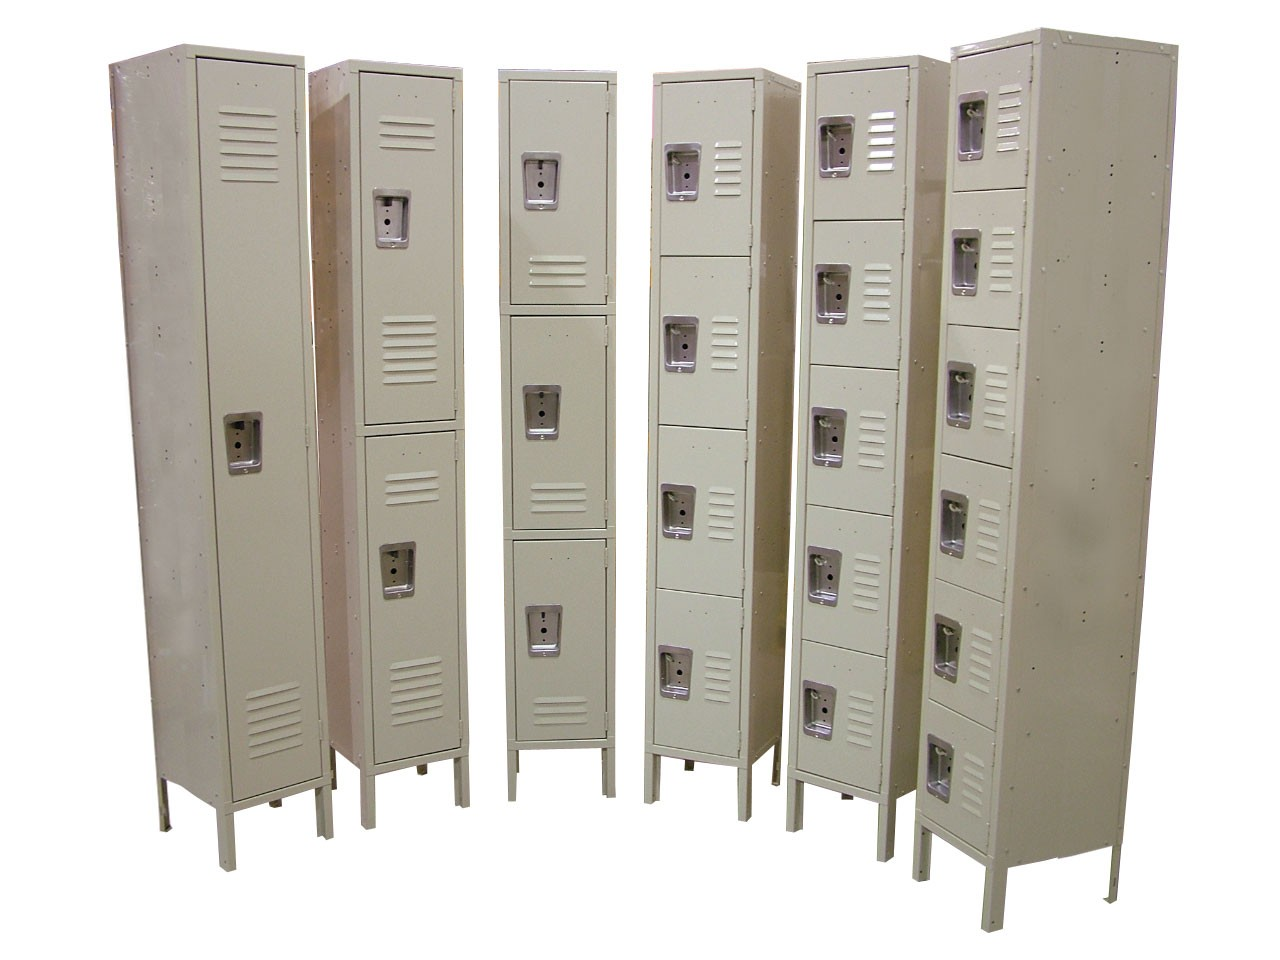 Omcan (FMA) LKT618 6-Tier Locker